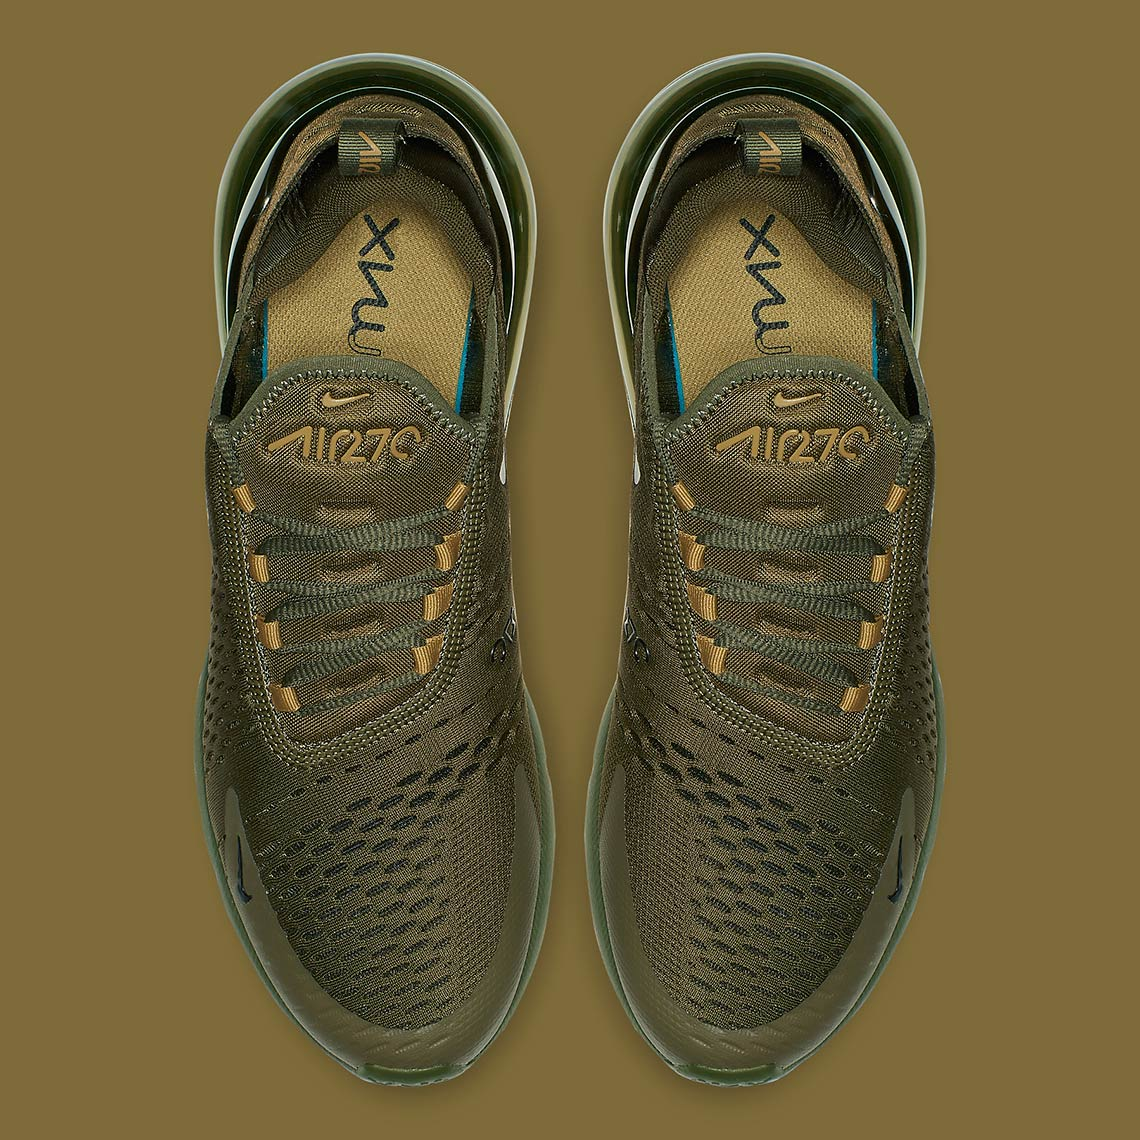 097a4a7e872f68 Nike Air Max 270. AVAILABLE AT Nike UK AVAILABLE AT Nike  150. Color  Olive  Canvas Olive Canvas Golden Moss-Black